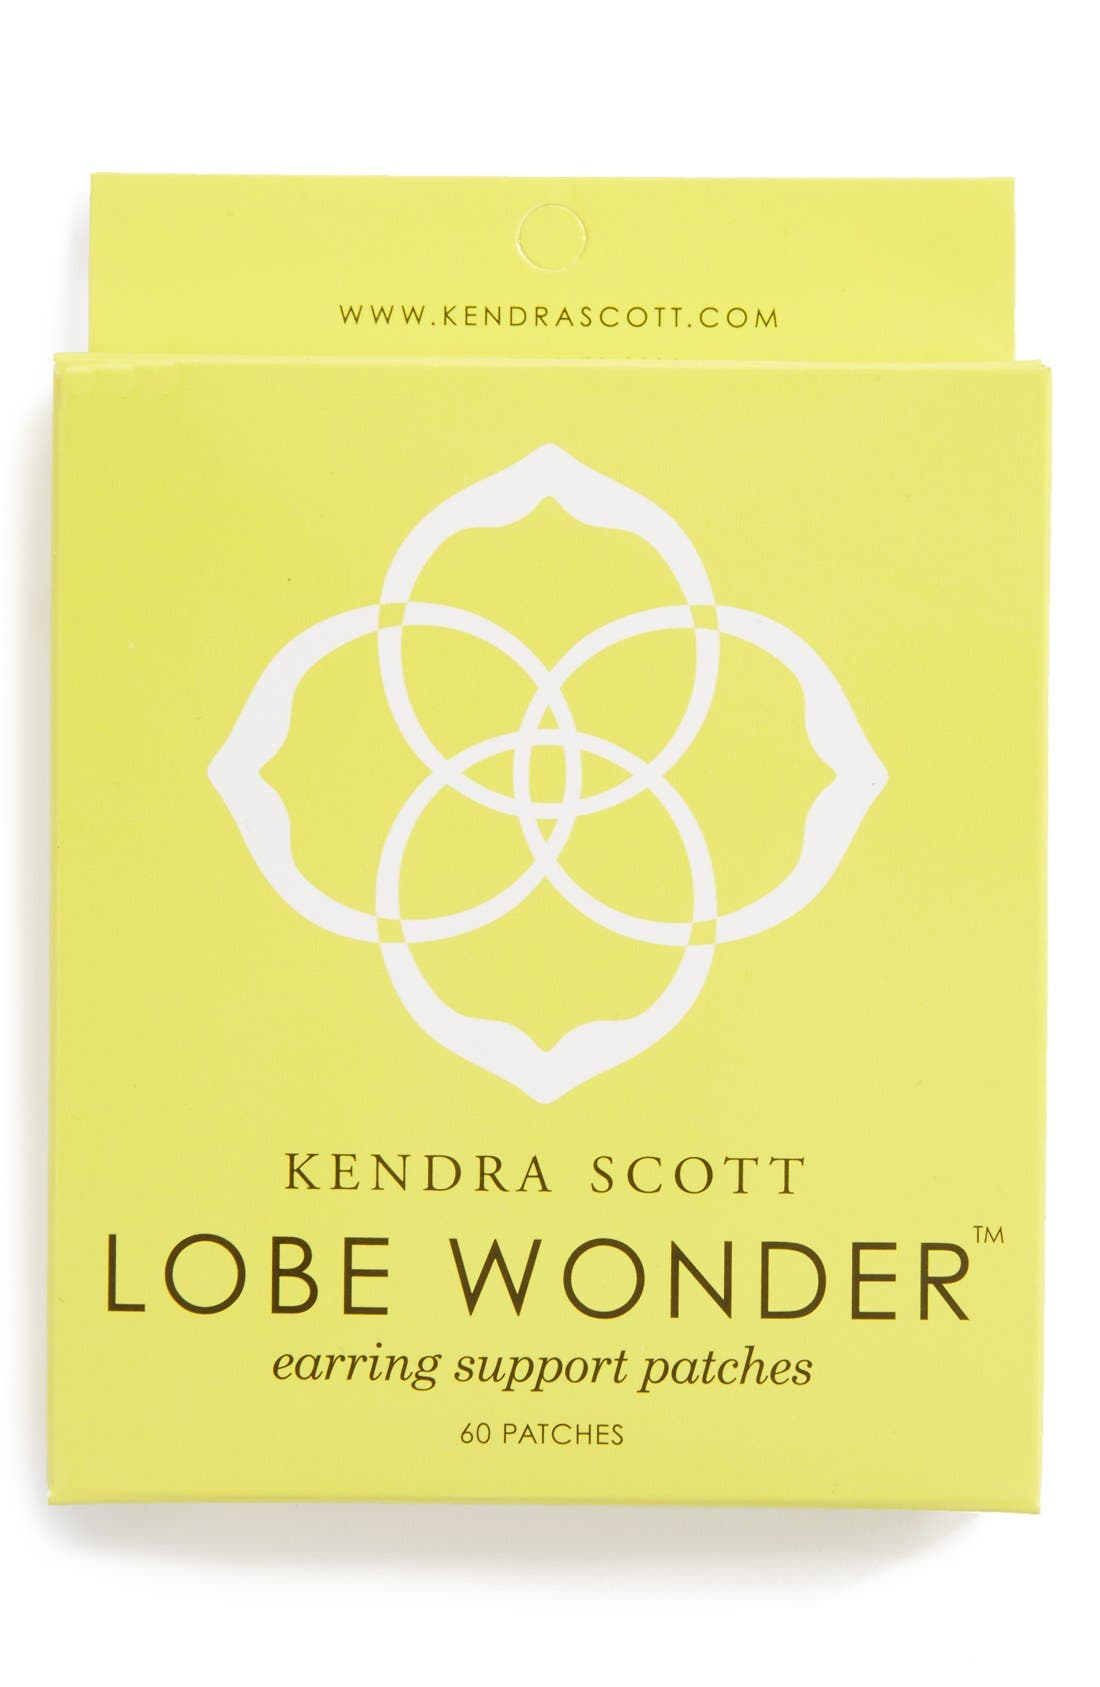 Main Image - Kendra Scott 'Lobe Wonder™' Earring Support Patches